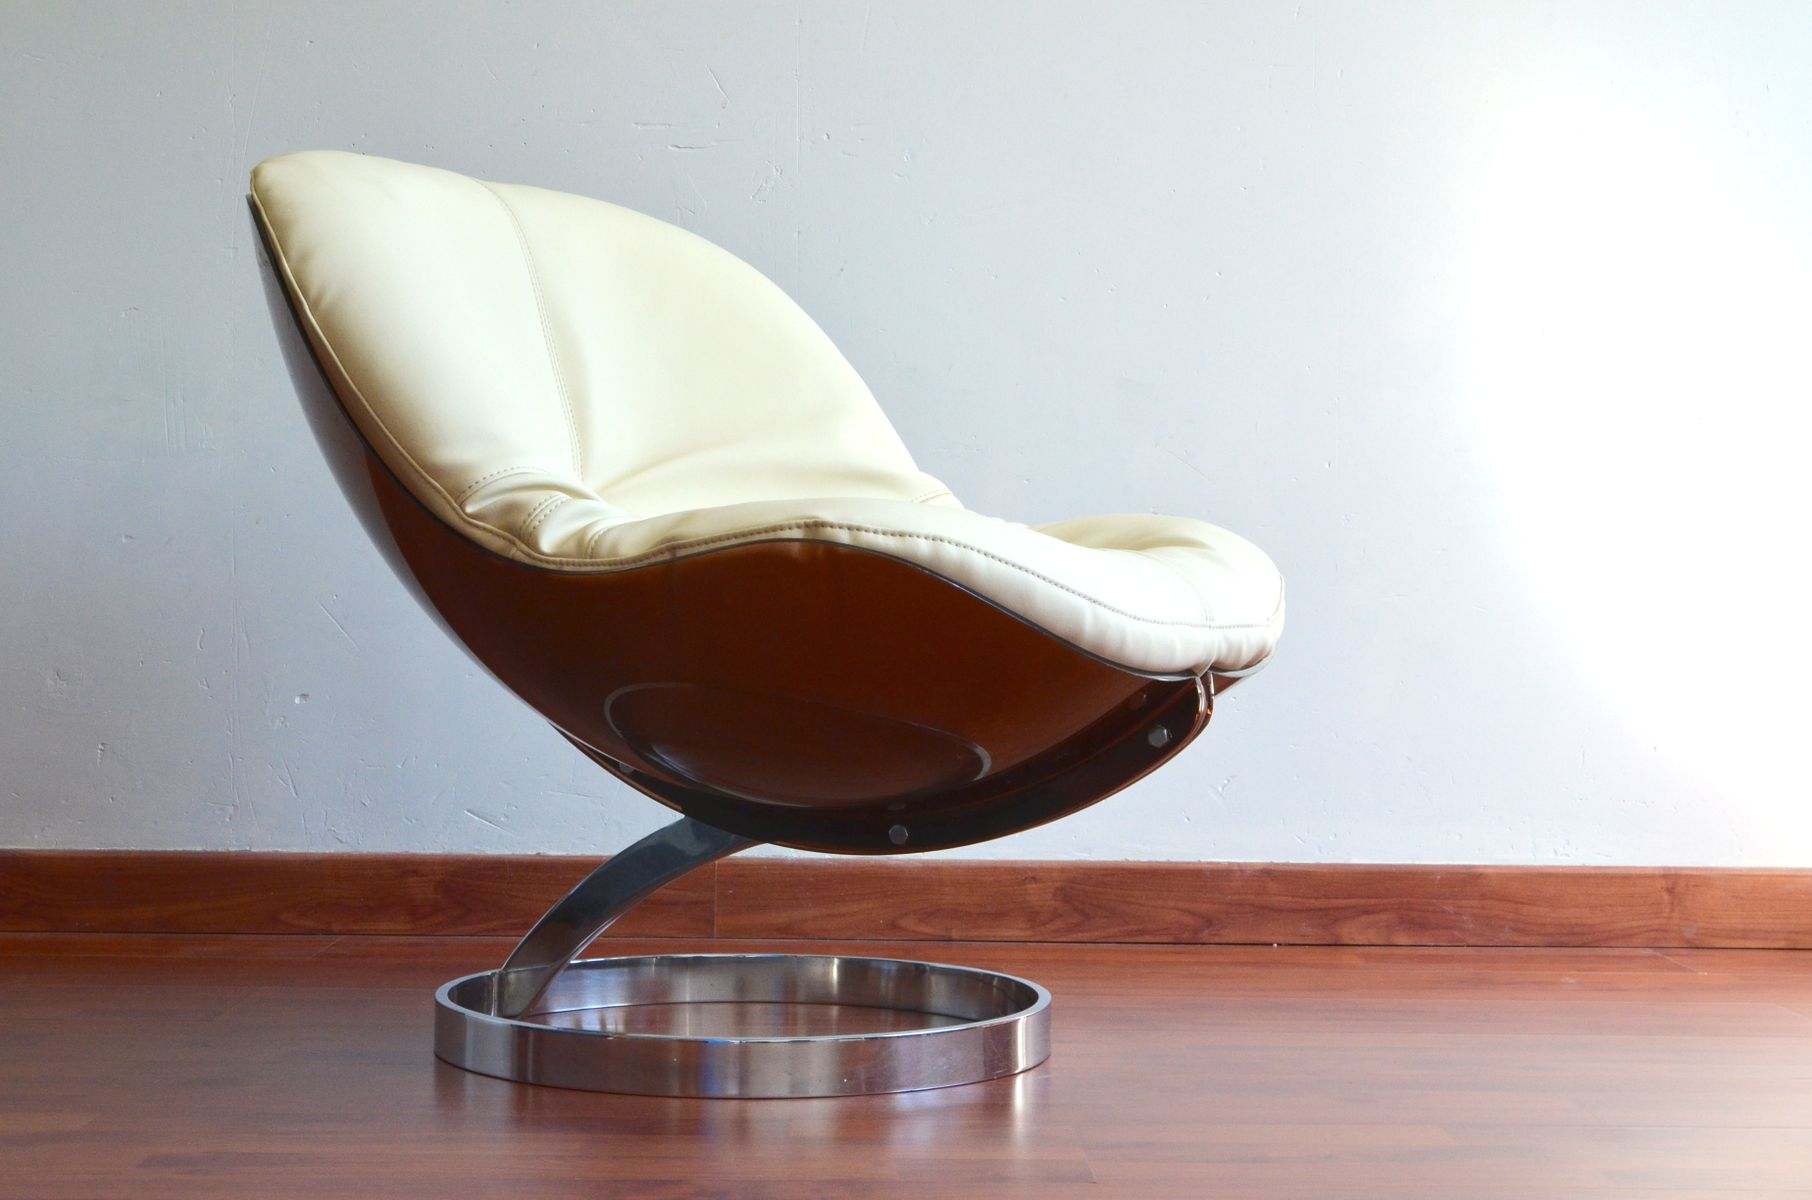 Sphere Lounge Chair by Boris Tabacoff for MMM for sale at